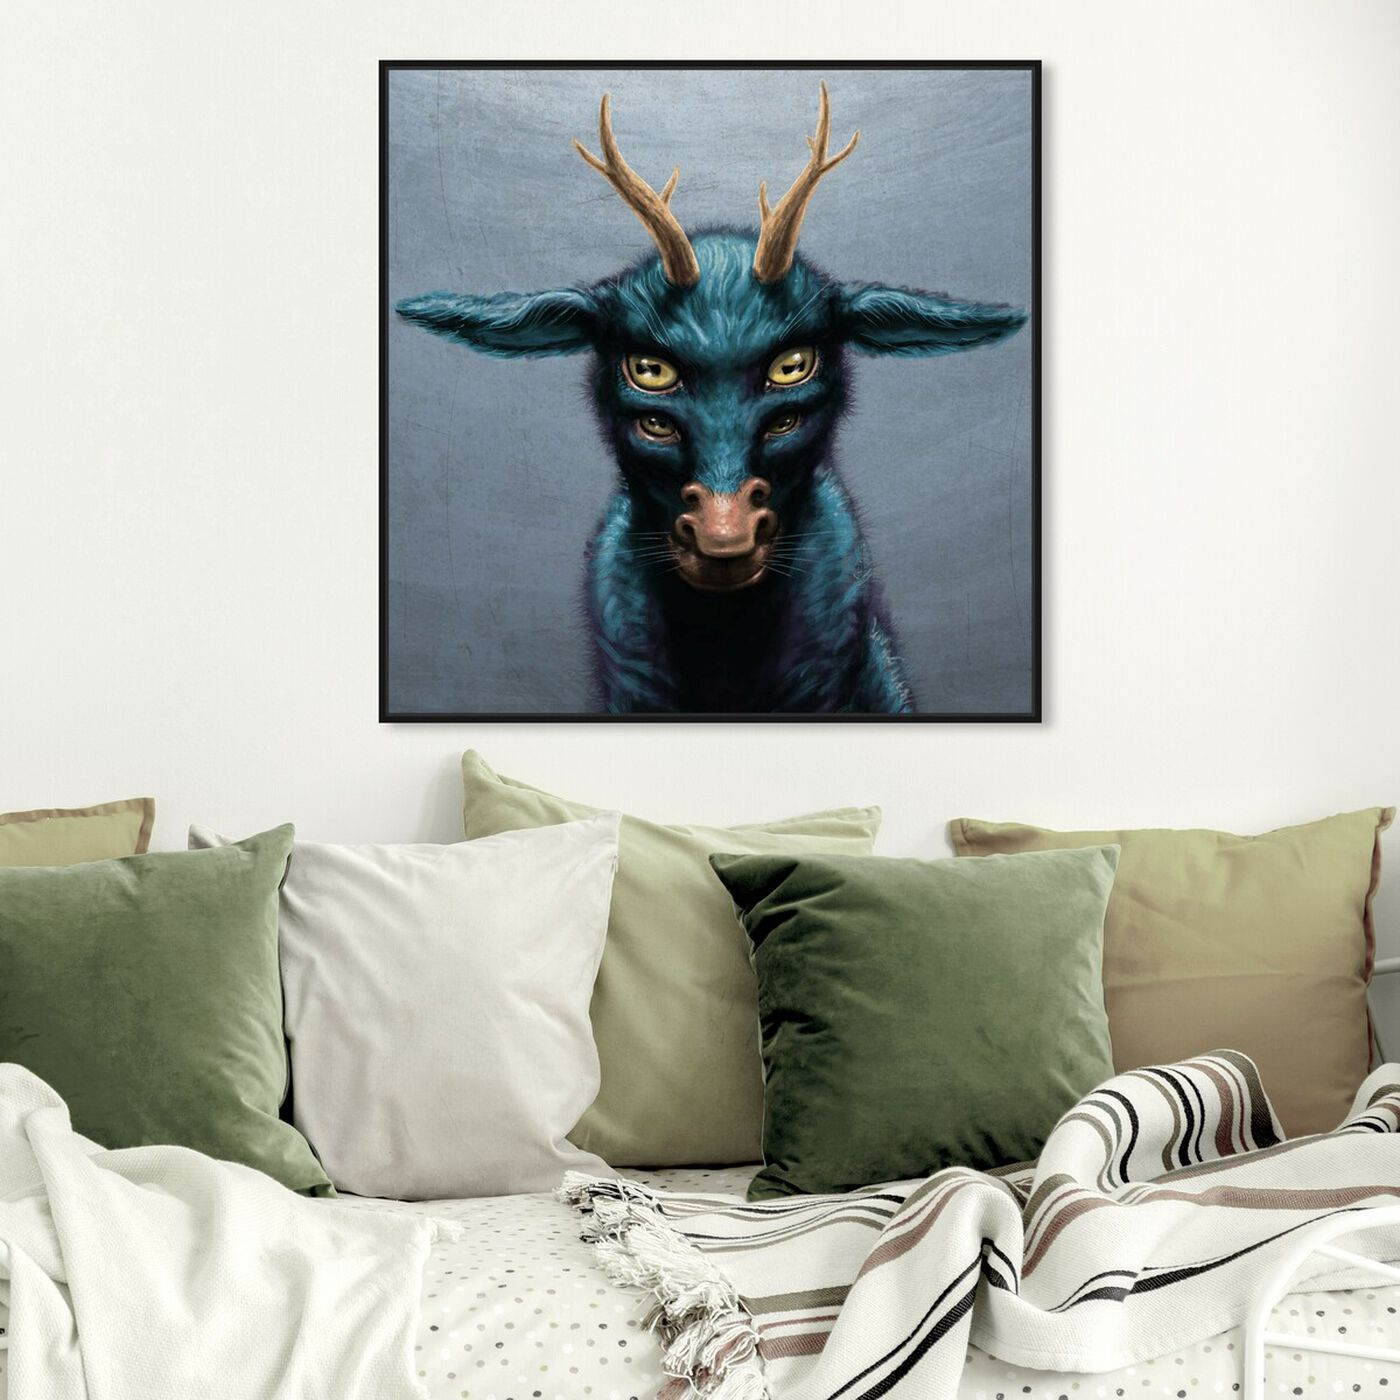 Hanging view of Mystical Creature featuring fantasy and sci-fi and fantasy creatures art.